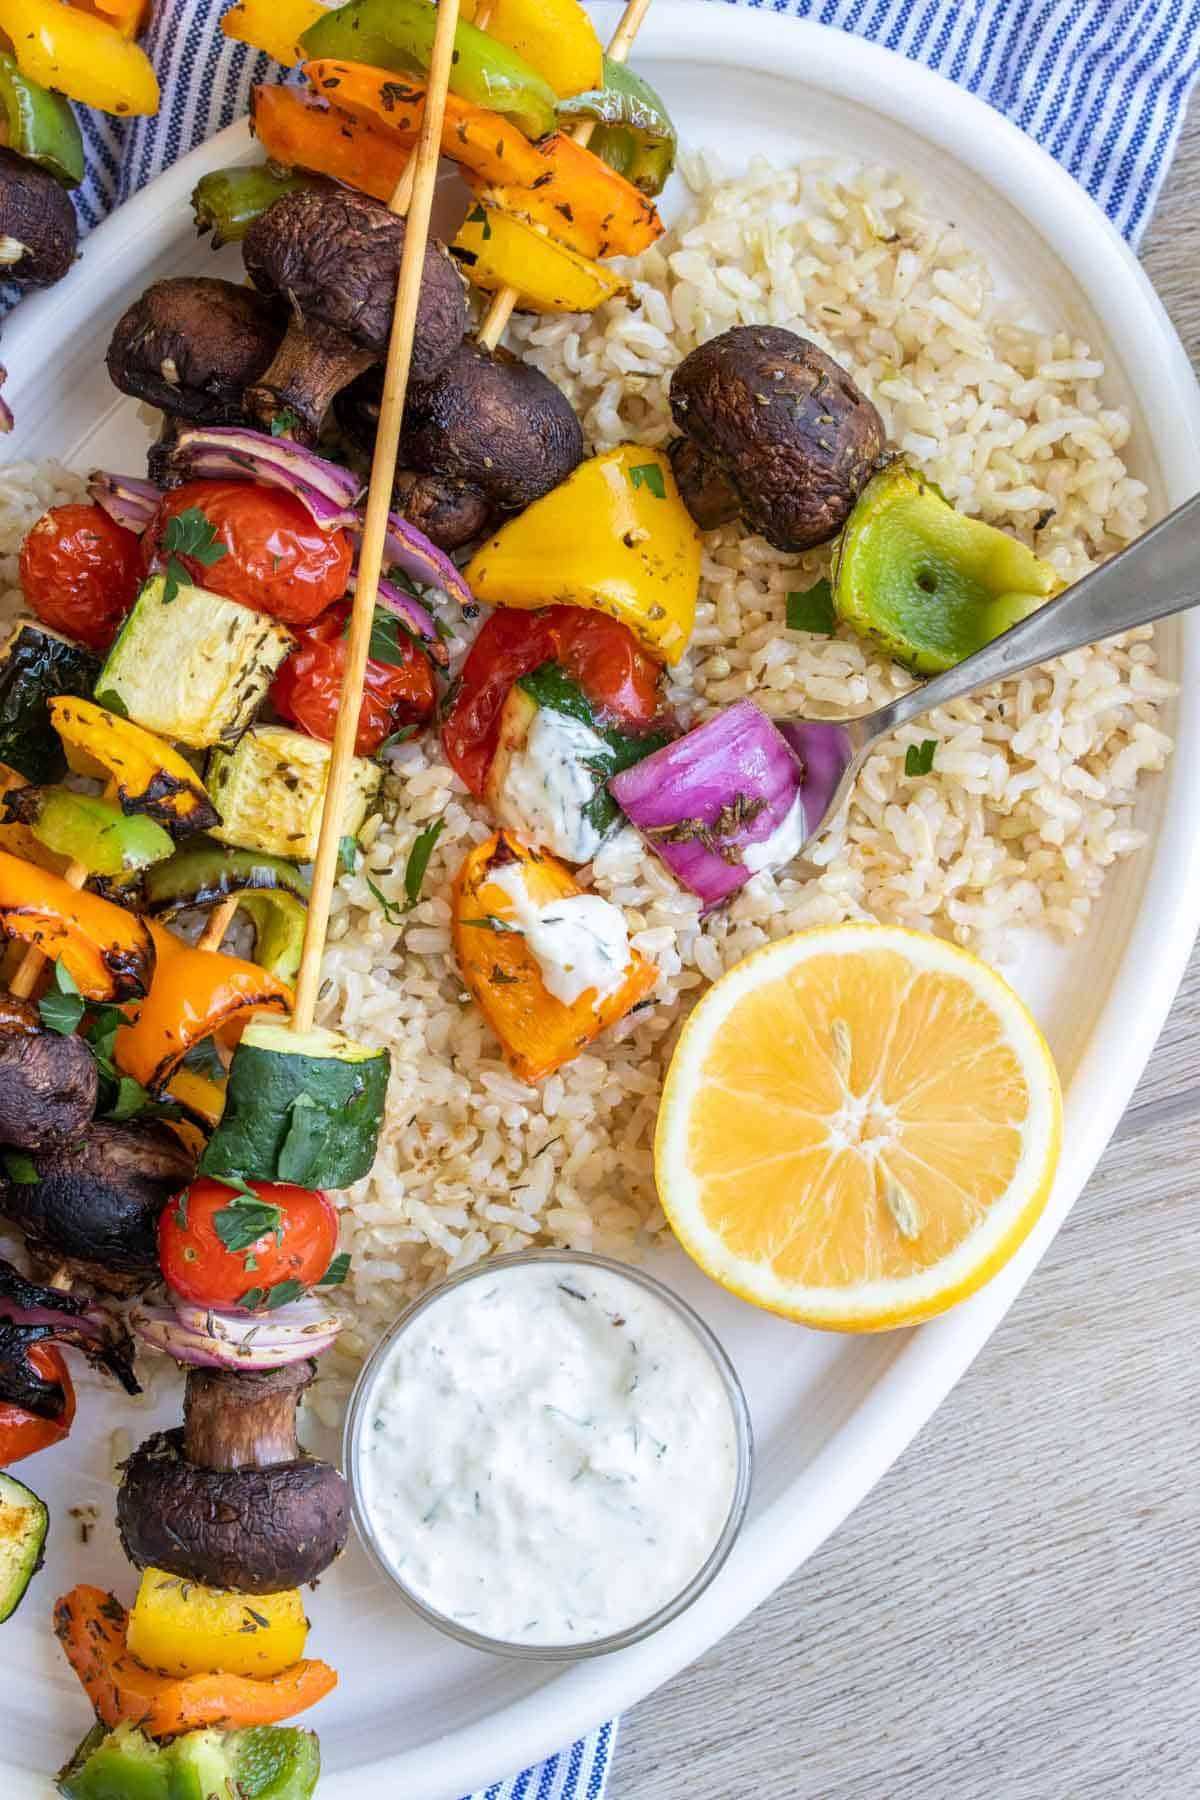 A half eaten veggie kabob on top of full kabobs sitting on a bed of rice on a plate